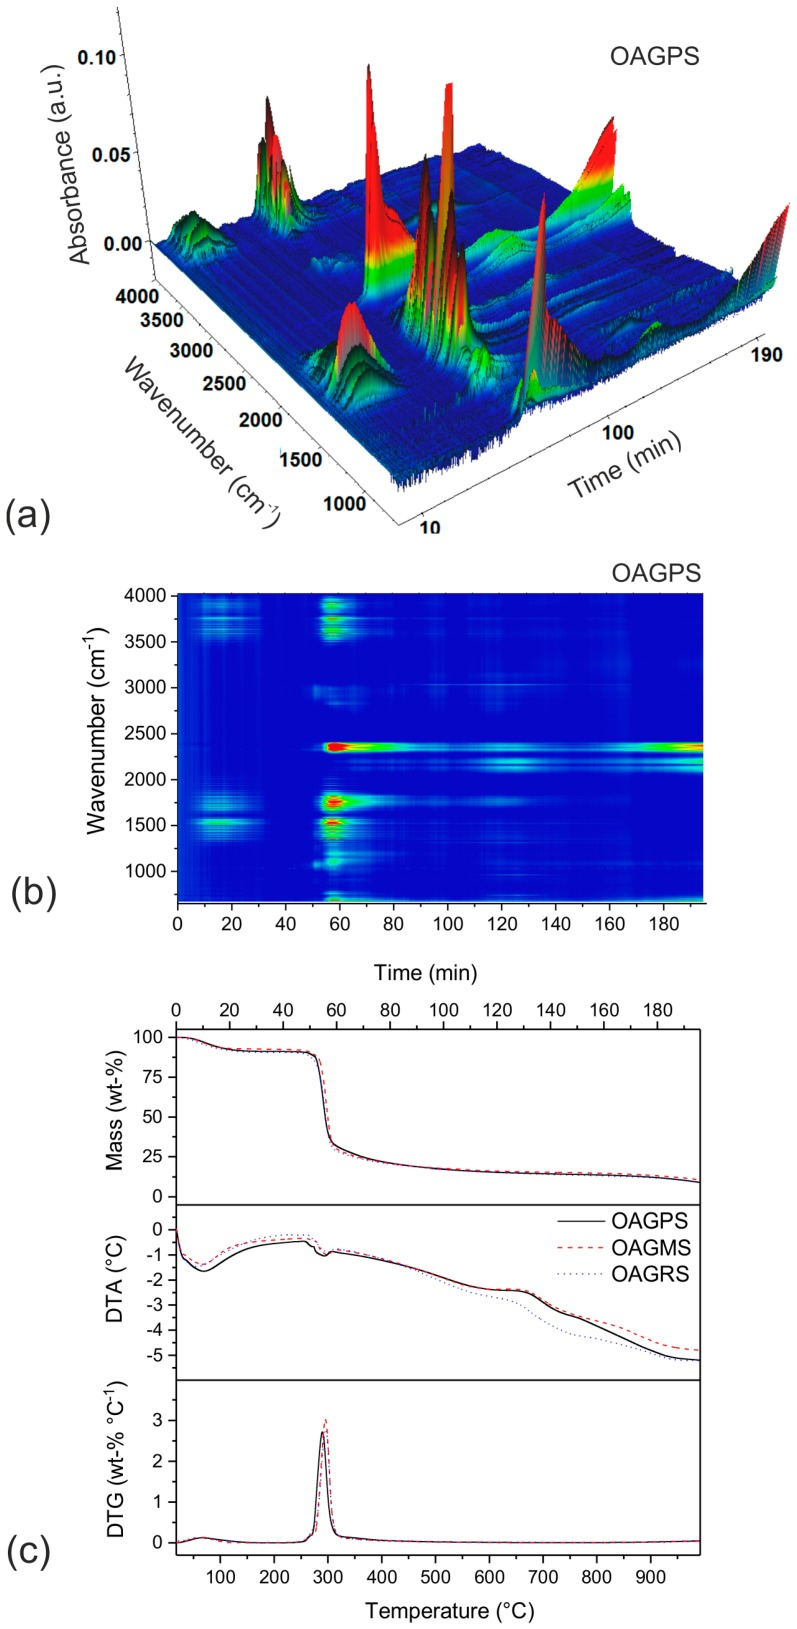 3D and 2D Fourier transform infrared (FTIR) spectrum maps of gaseous products evolved during thermal decomposition of ( a , b ) the organic aerogel sample based on potato starch (OAGPS) and ( c ) TGA/DTA/DTG profiles for OAGPS, OAGMS (OAG based on maize starch) and OAGRS (OAG based on rice starch) materials.